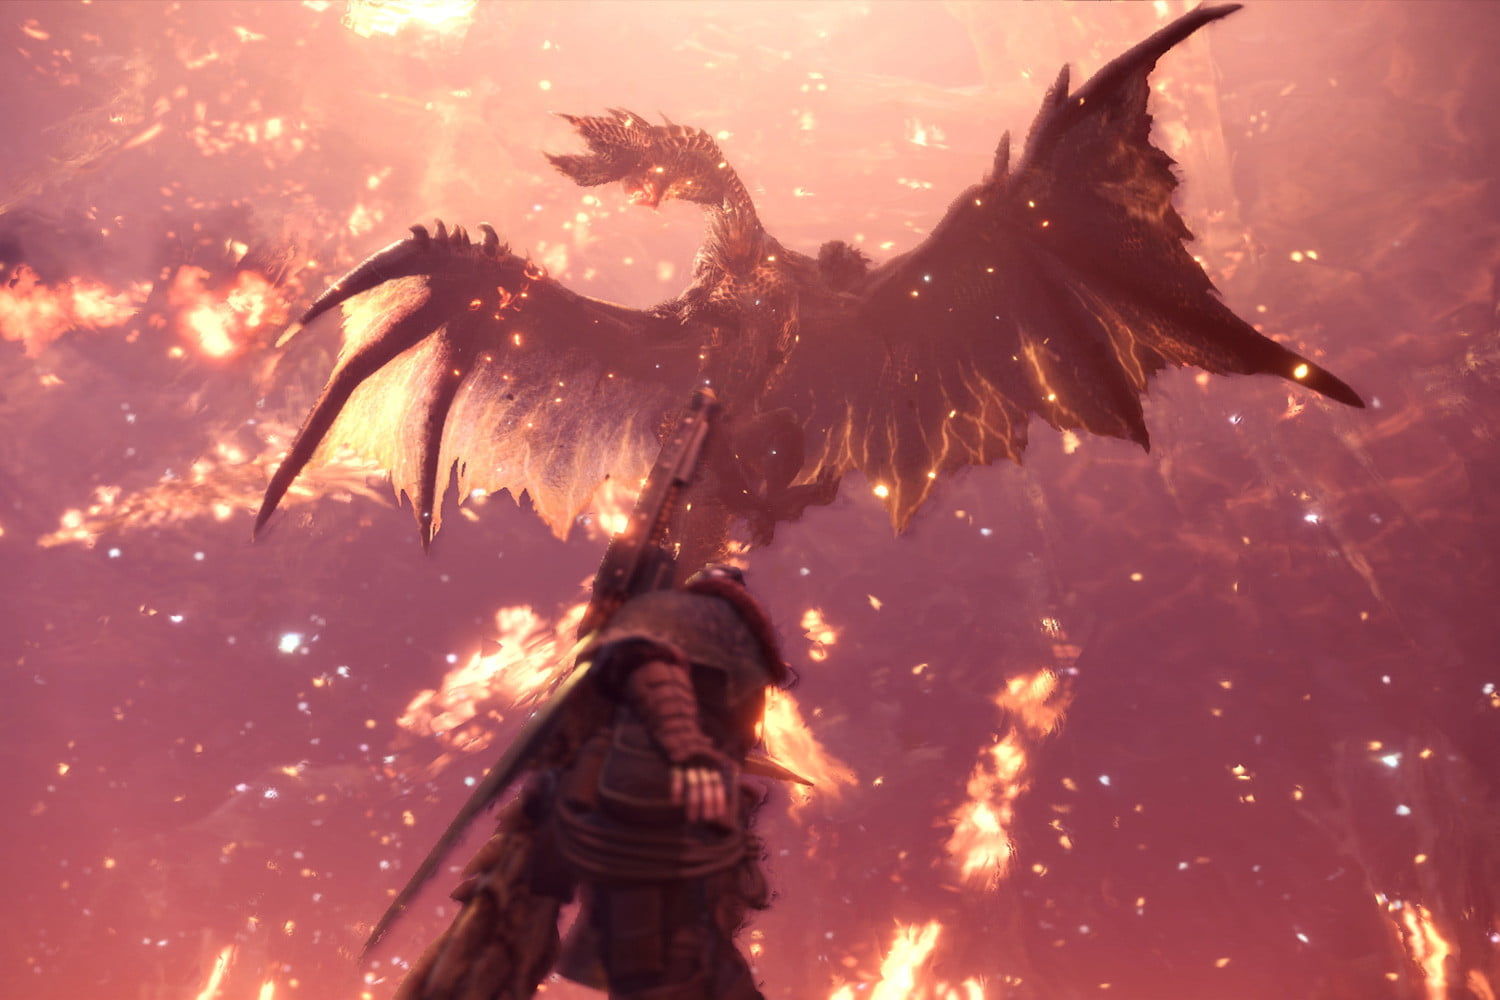 Monster Hunter World Iceborne Alatreon Guide Digital Trends These are endgame armor sets and are currently the some of the strongest in the game. monster hunter world iceborne alatreon